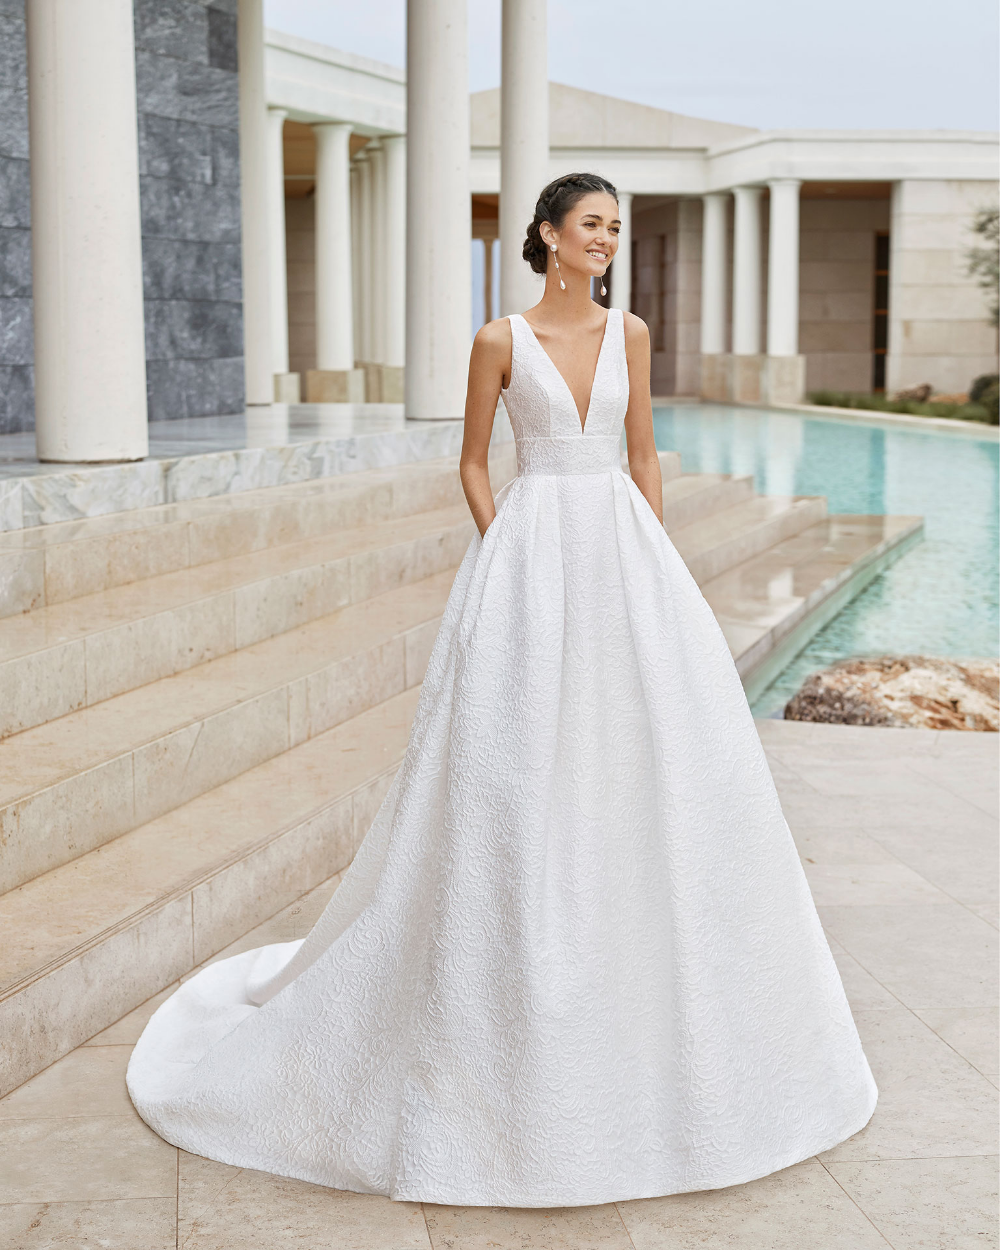 Sabela Bridal 2020 Rosa Clara Couture Collection Tailored Wedding Dress Wedding Dress With Pockets Classic Wedding Dress